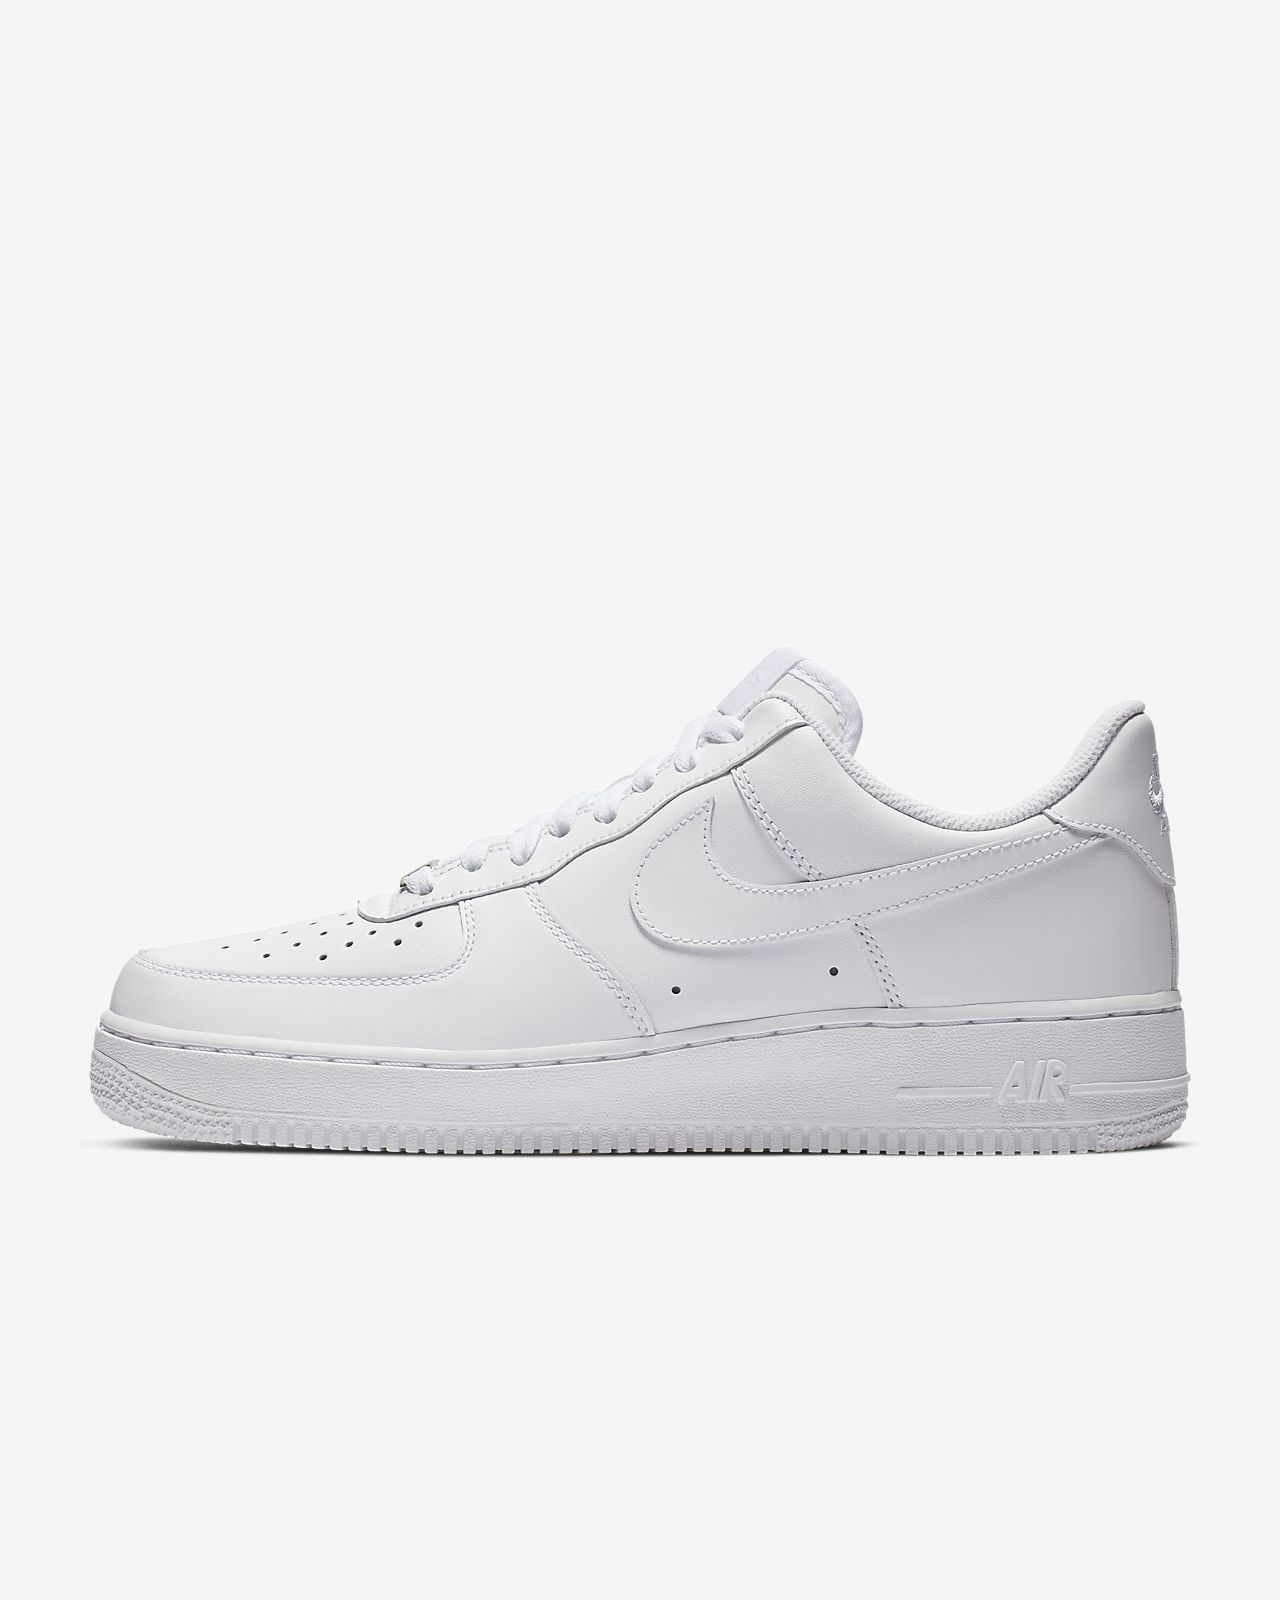 best service 87dd7 fdee5 Women s Shoe. Nike Air Force 1  07. CAD 120. Low ...